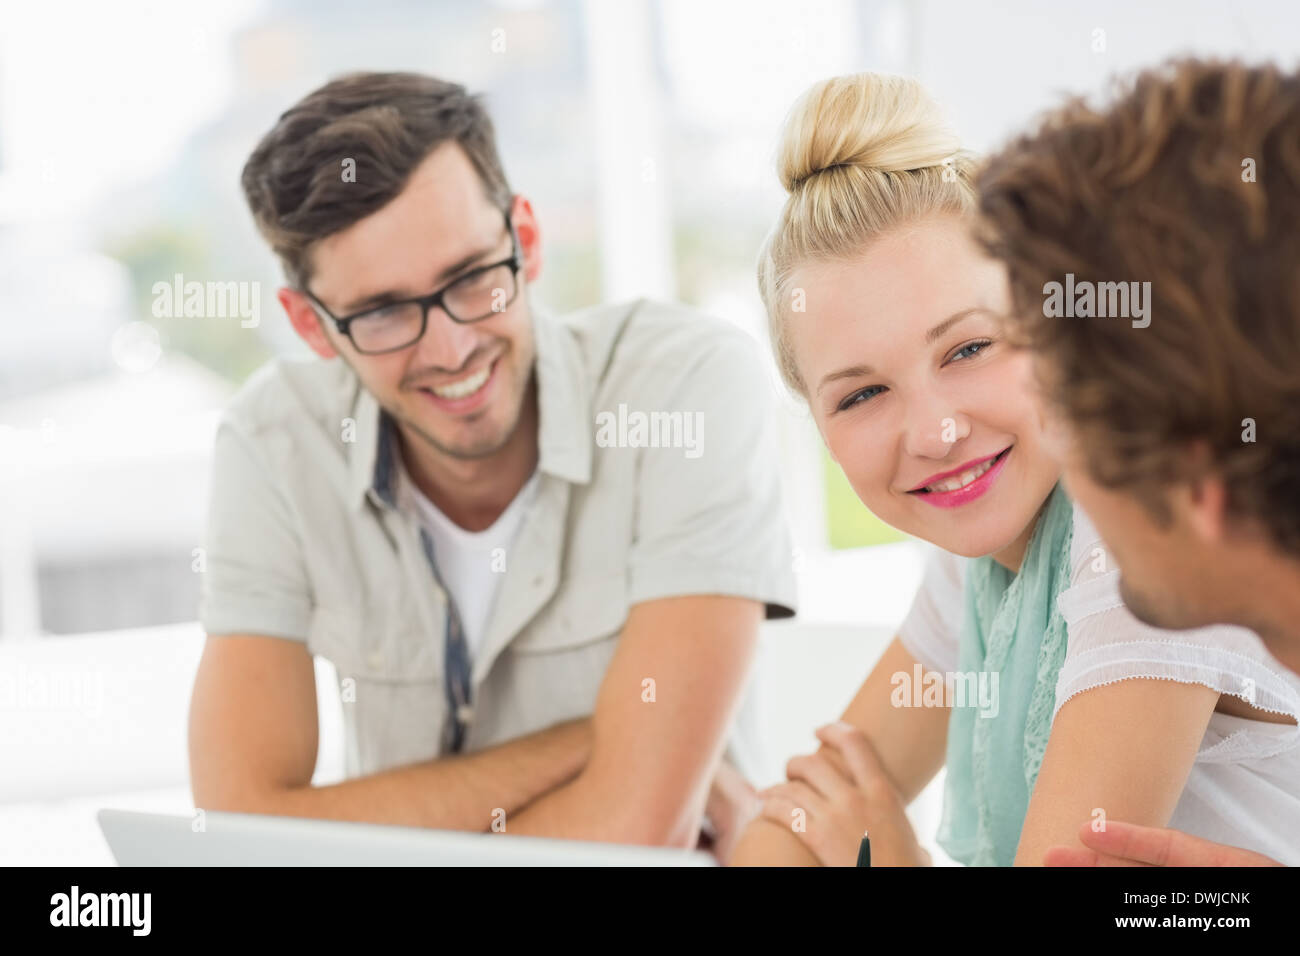 Closeup of a group of casual people Stock Photo